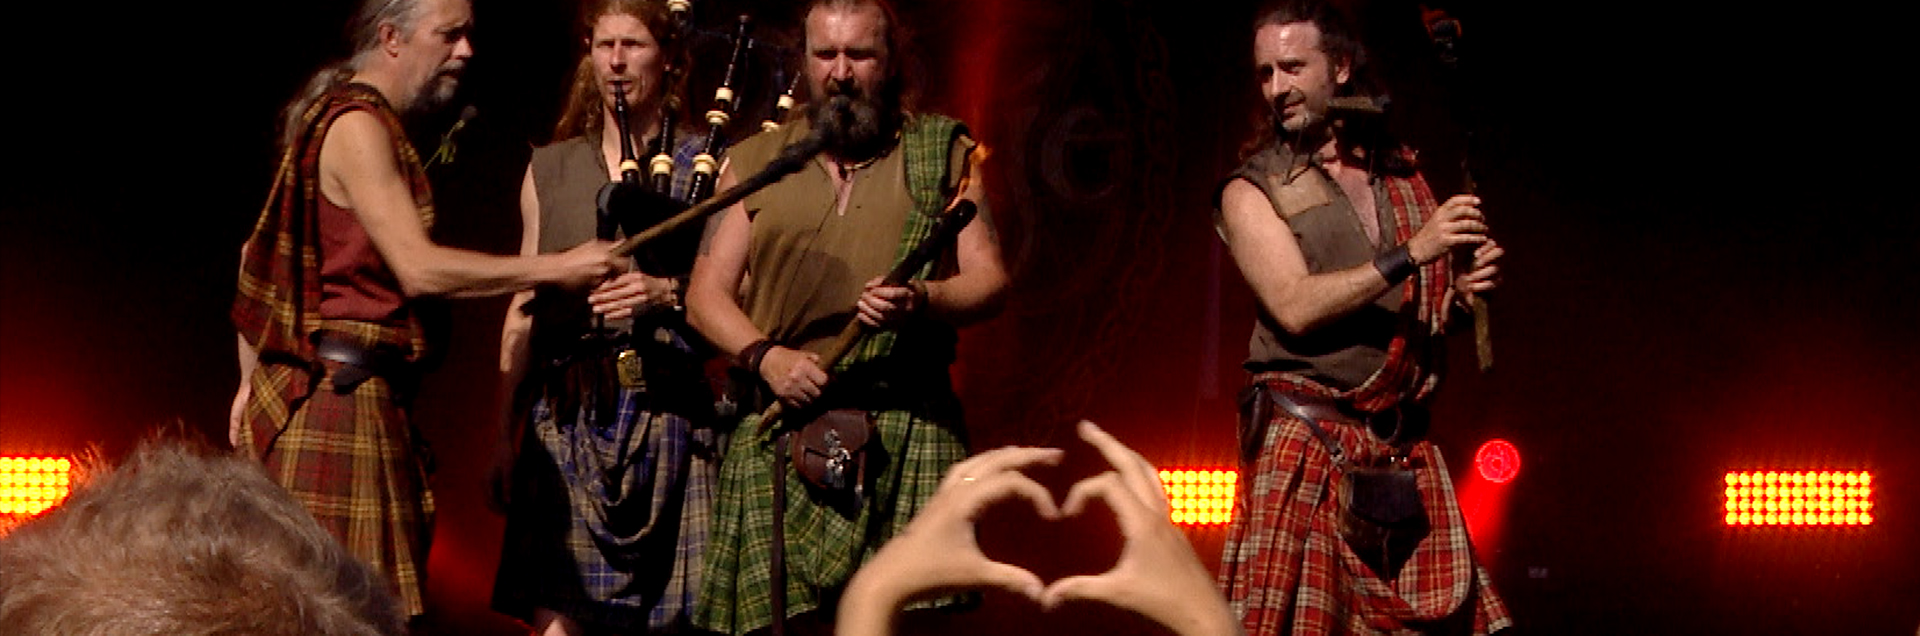 Castlefest-2017-The-Encore-Rapalje-Celtic-Folk-Music